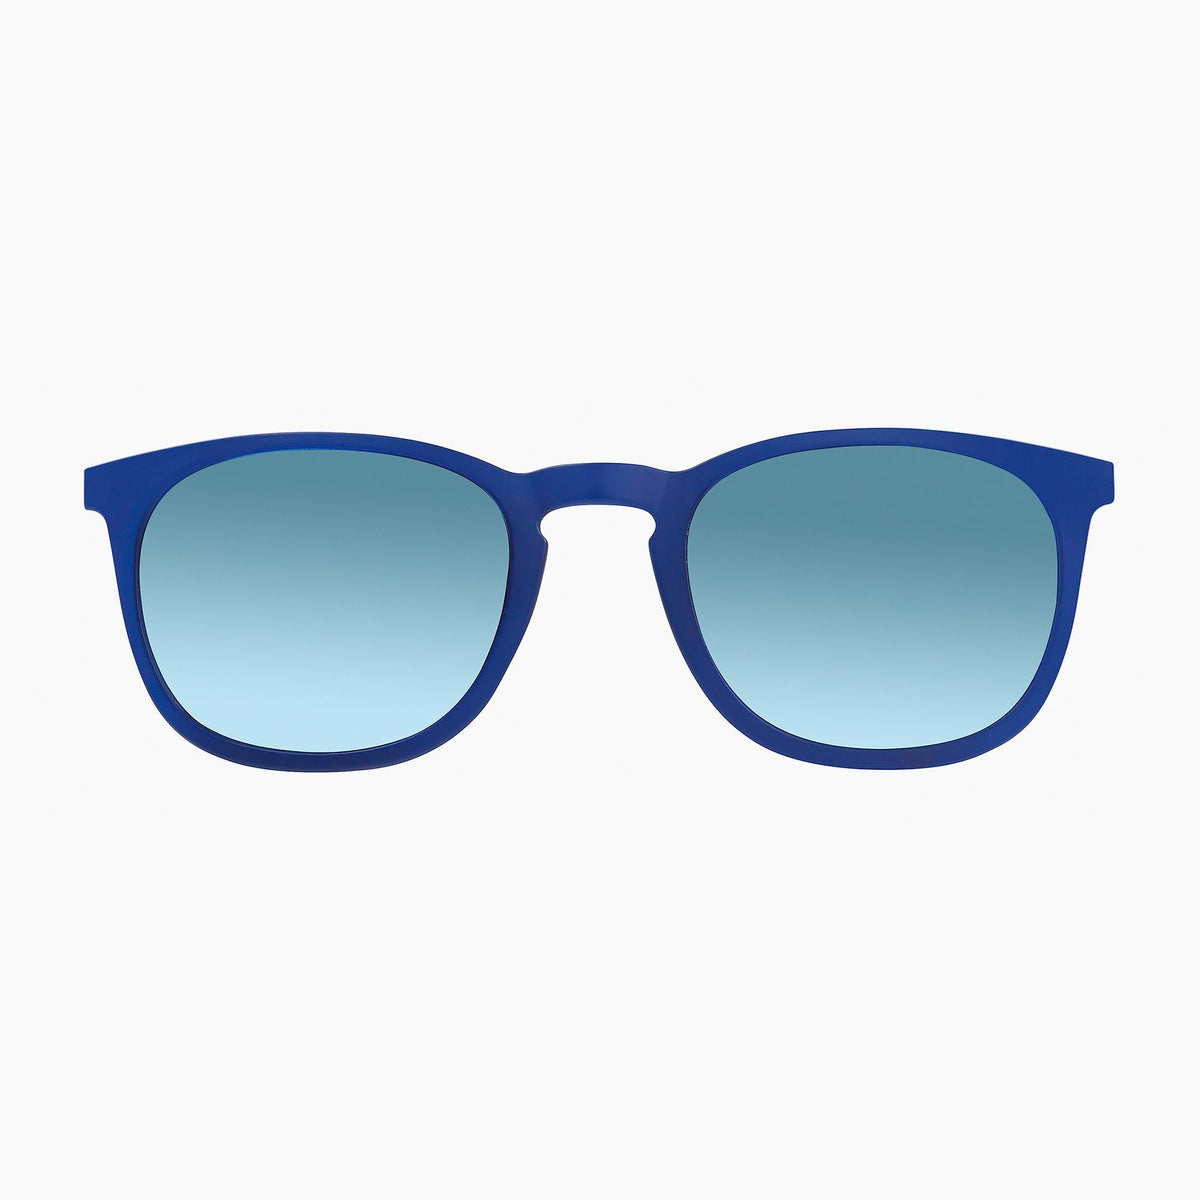 Dark Blue / Grey Lens